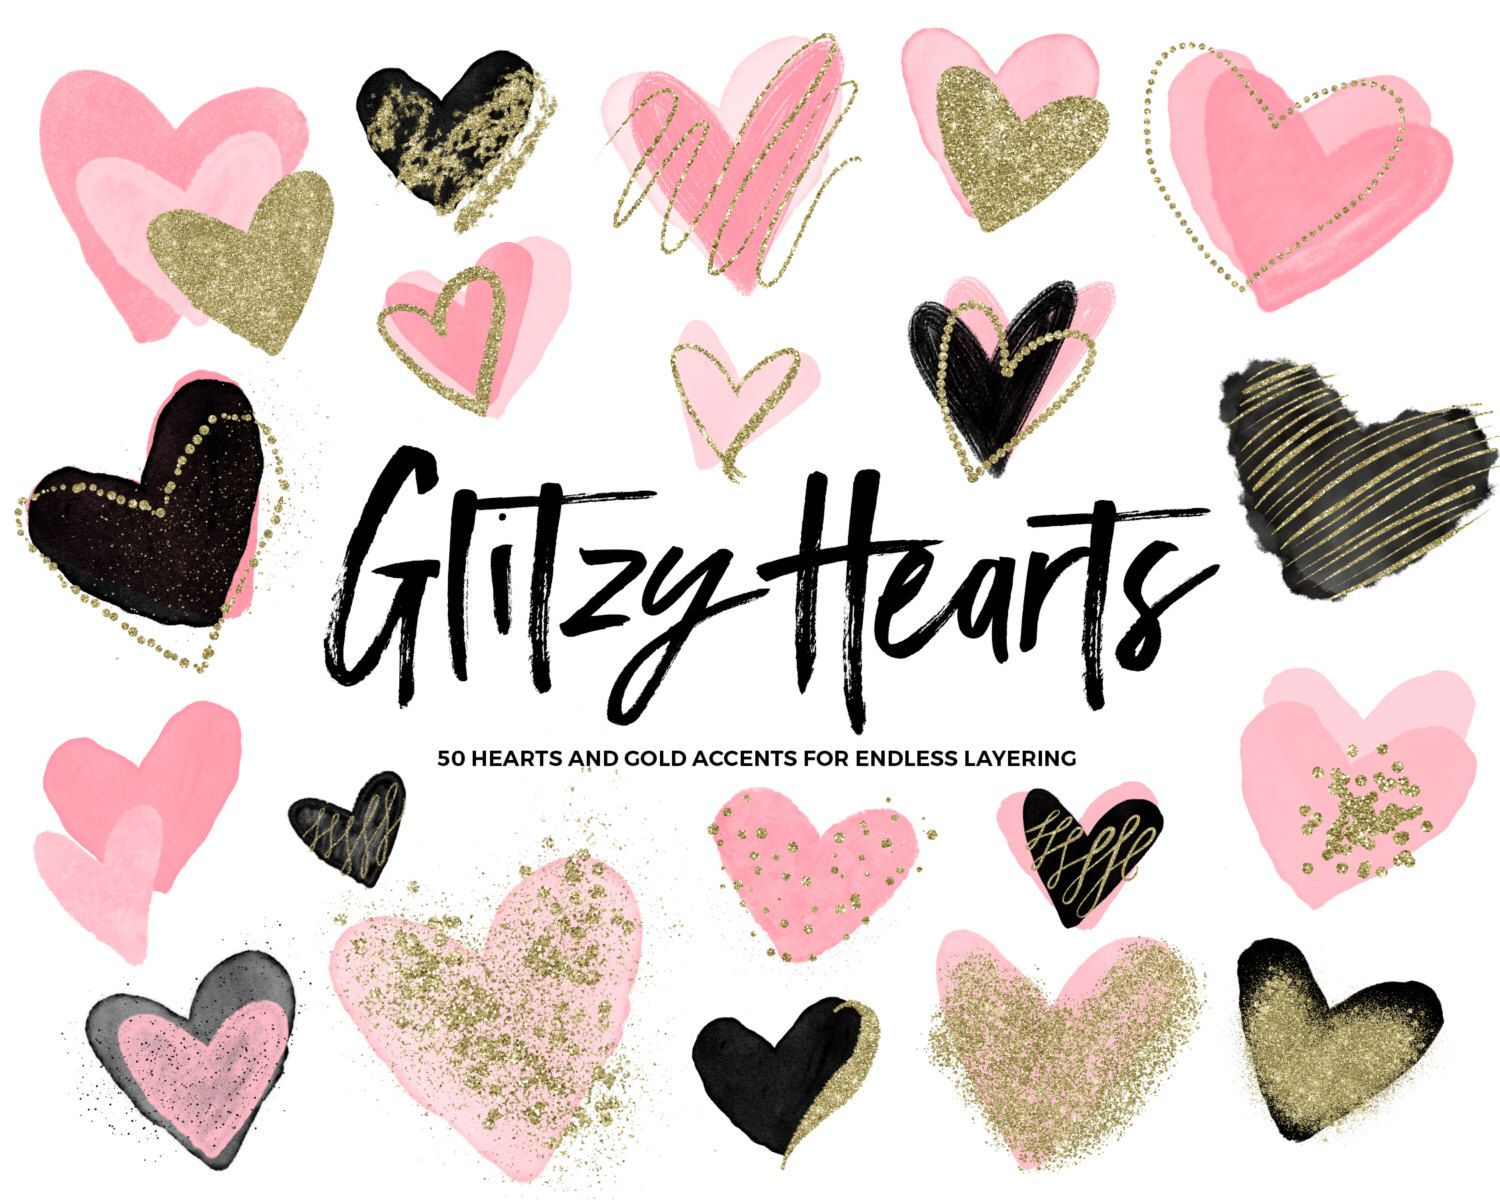 Pink Watercolor Heart Clipart / Clipart Hearts / Gold Glitter Hearts / Gold Hearts Clip Art / Valentines Clip Art / Valentines Day Clipart by Everdawn on Etsy https://www.etsy.com/listing/488411544/pink-watercolor-heart-clipart-clipart